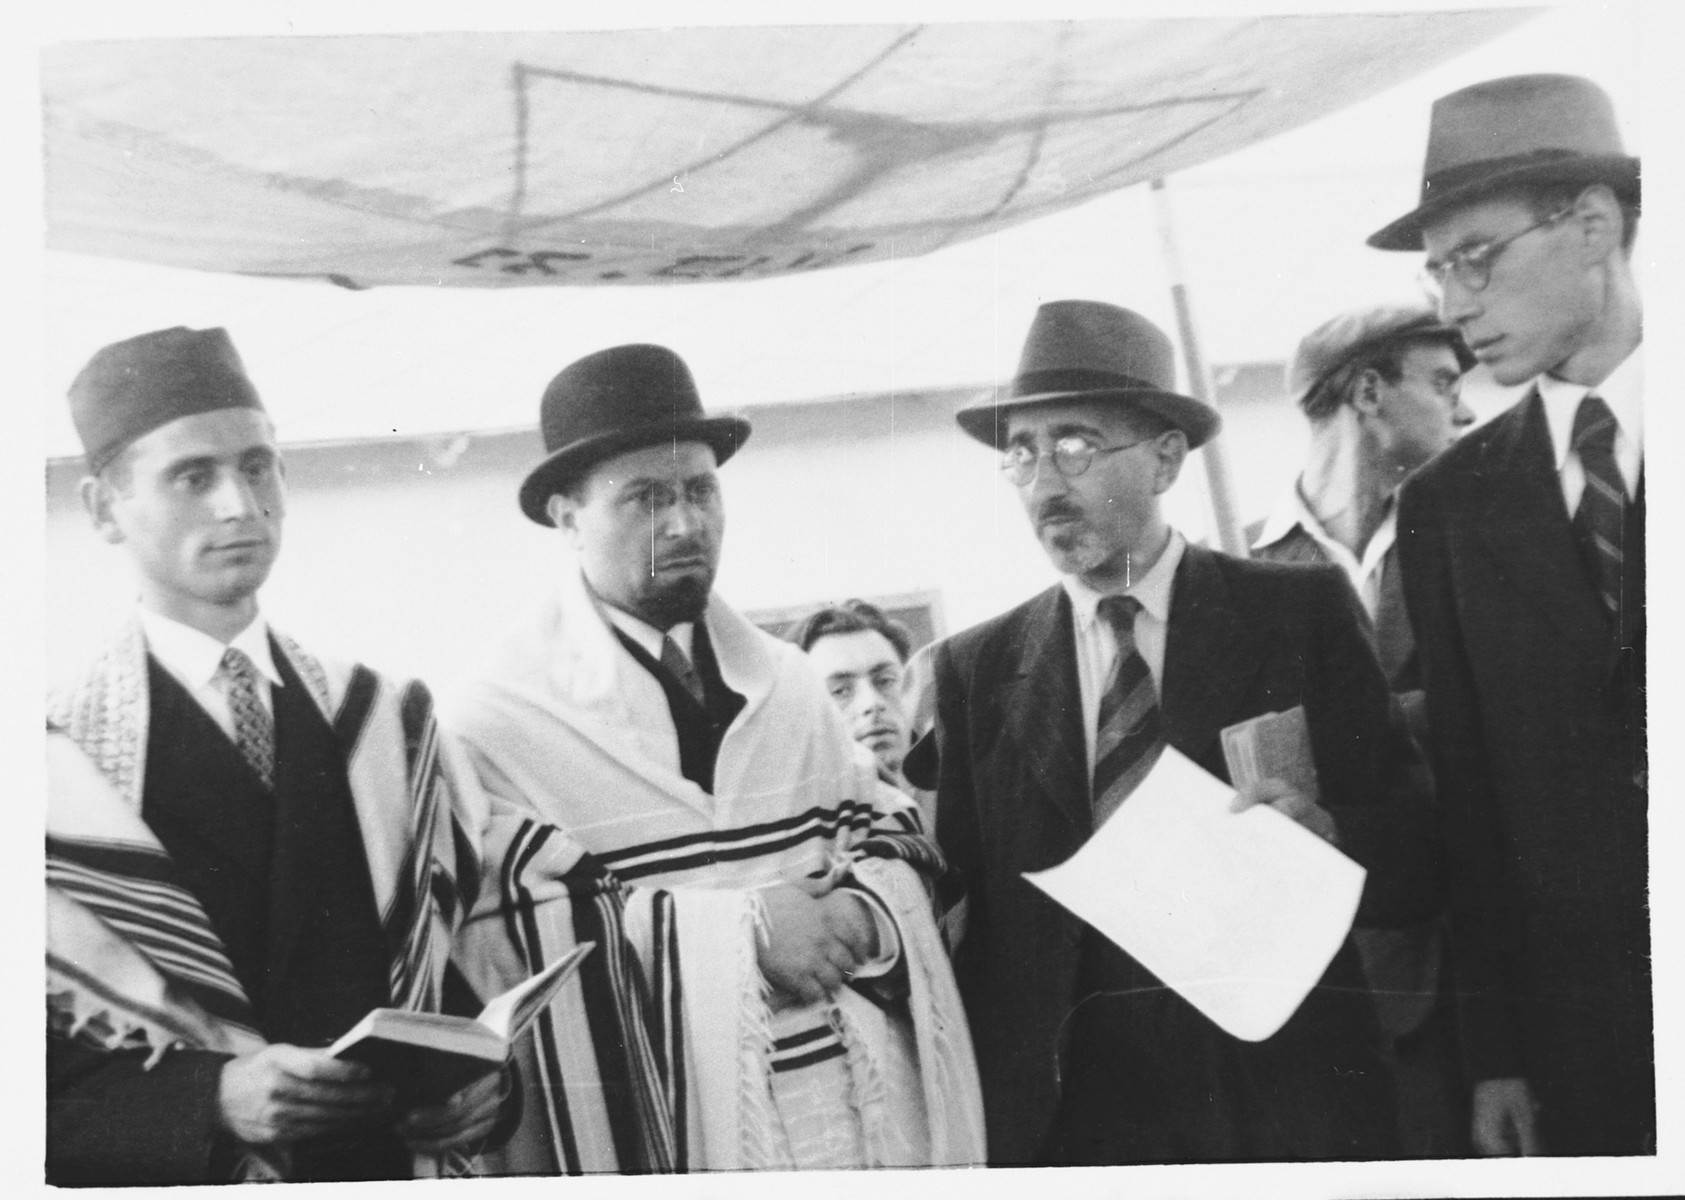 Rabbi Riccardo Pacifici performs a wedding in the Ferramonti camp.